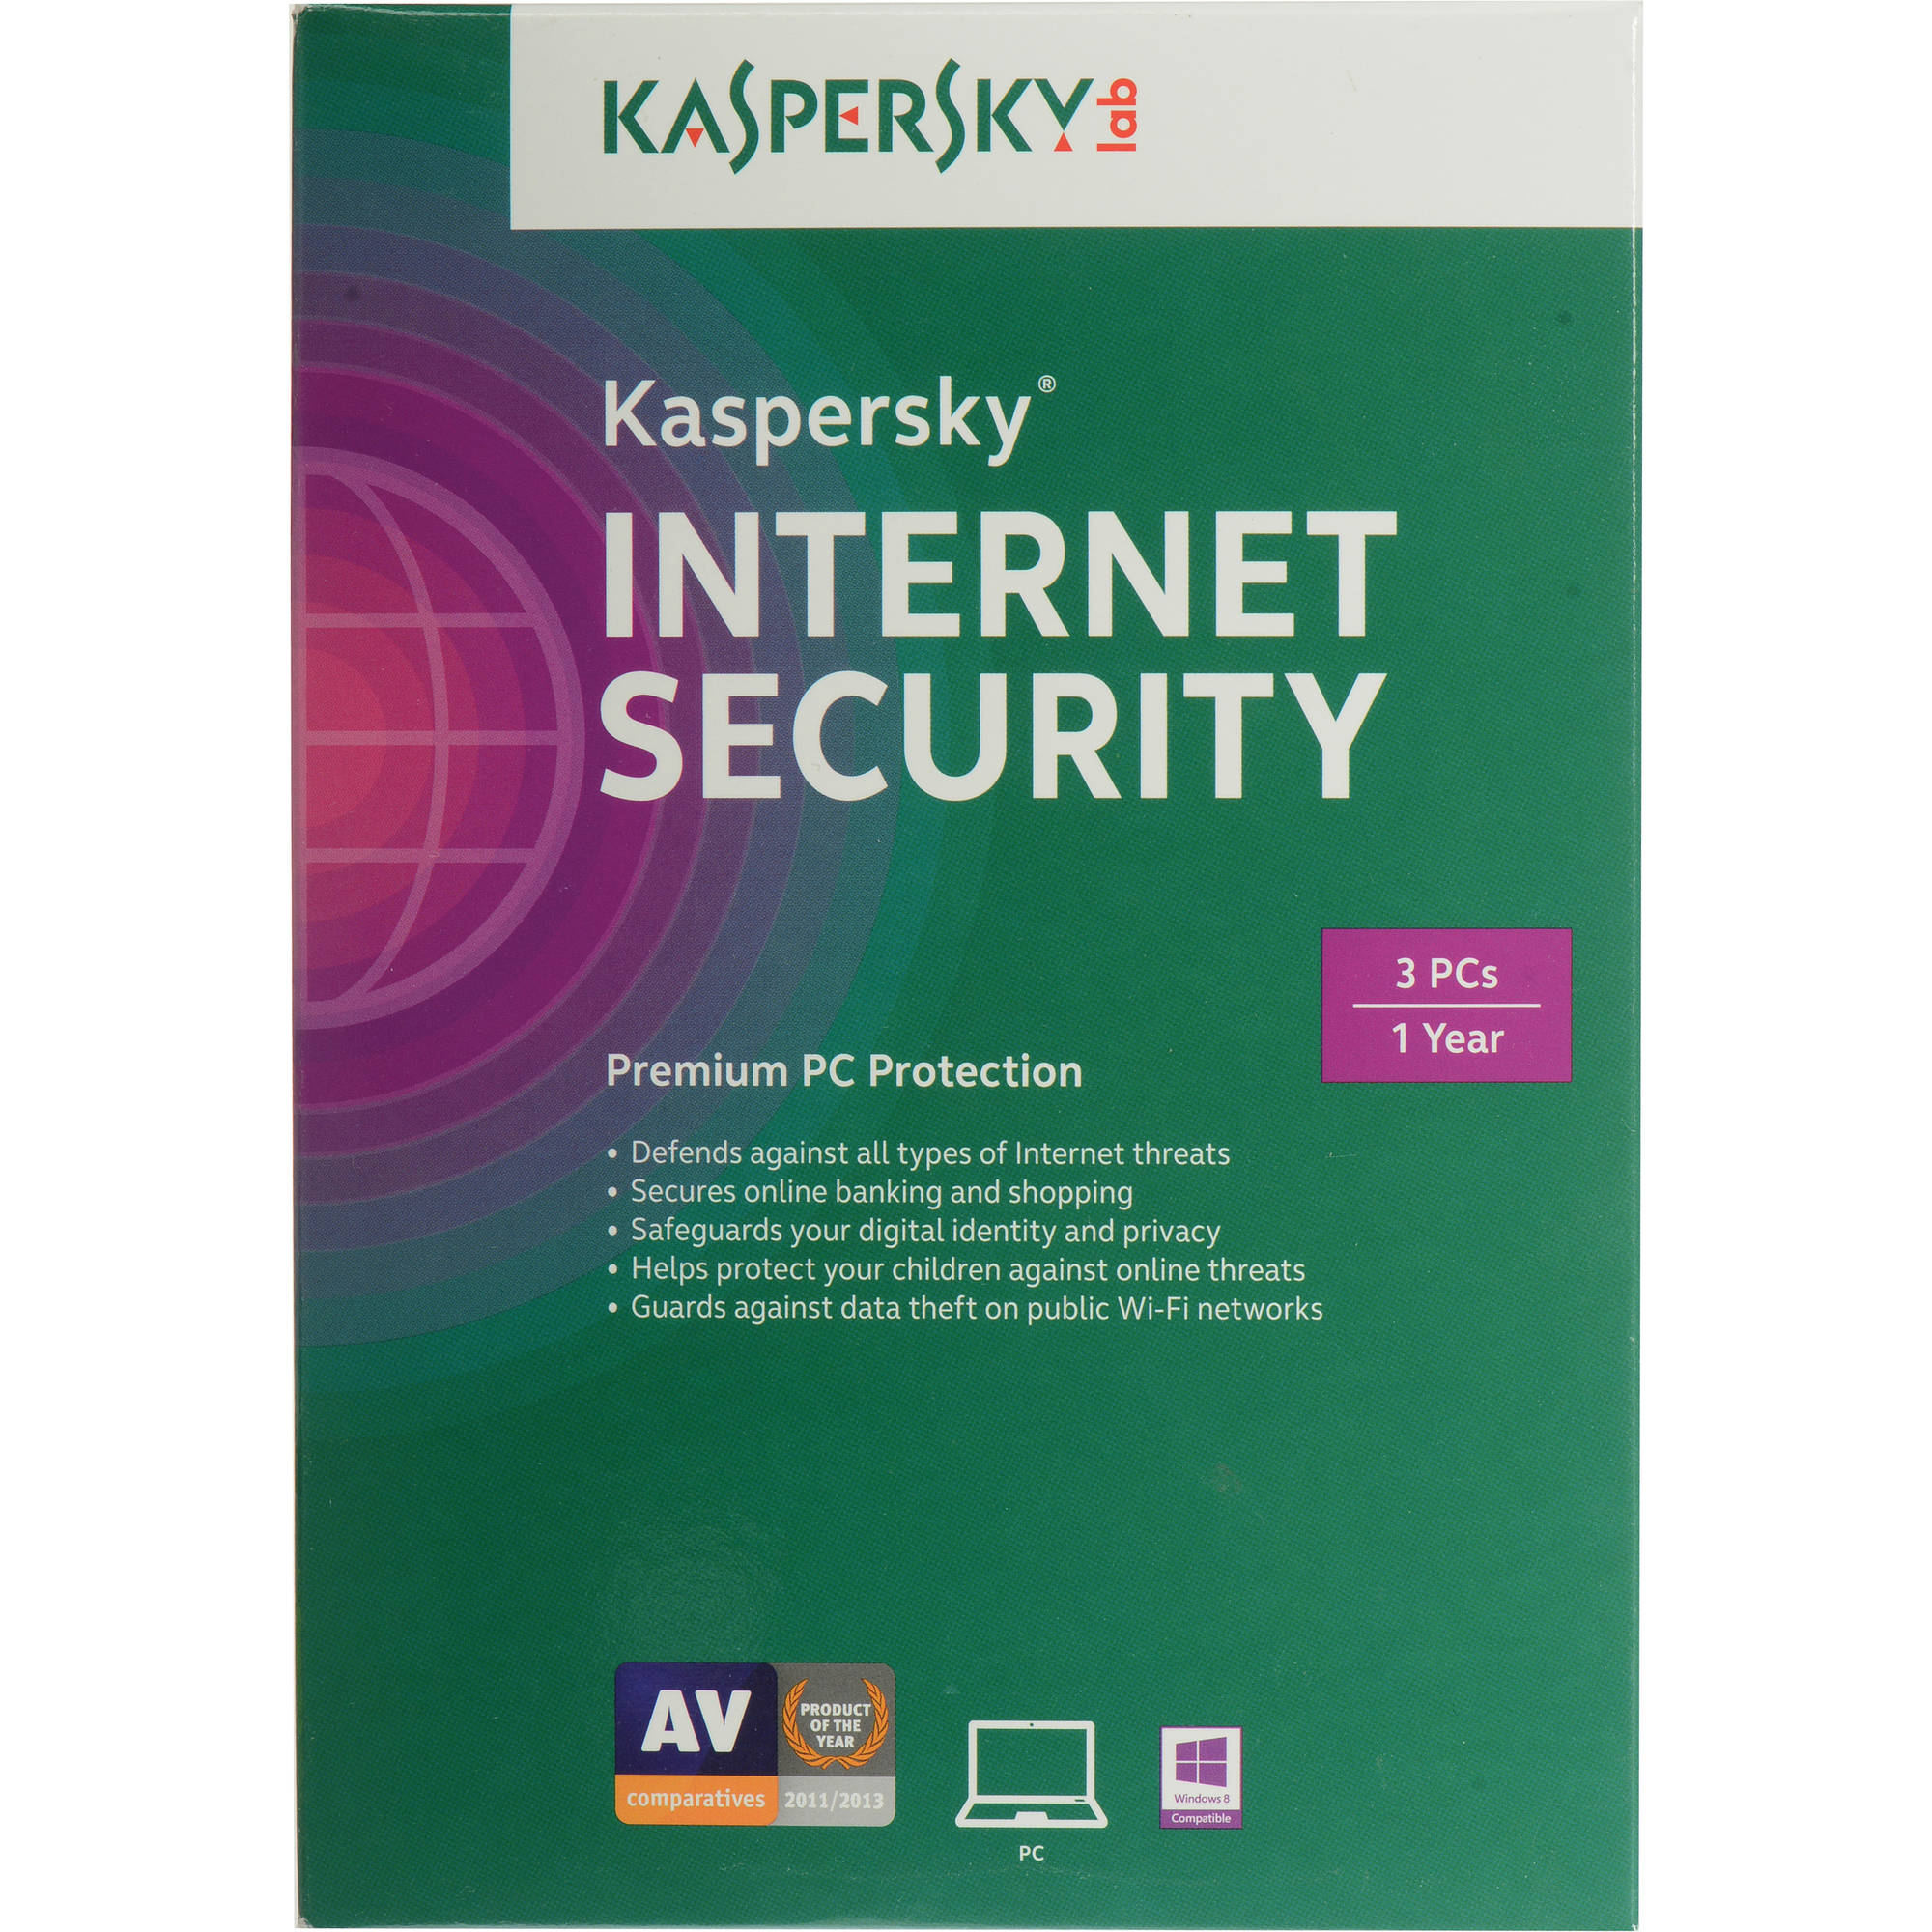 Kaspersky Internet Security 2015 (3-PCs, 1-Year Protection)